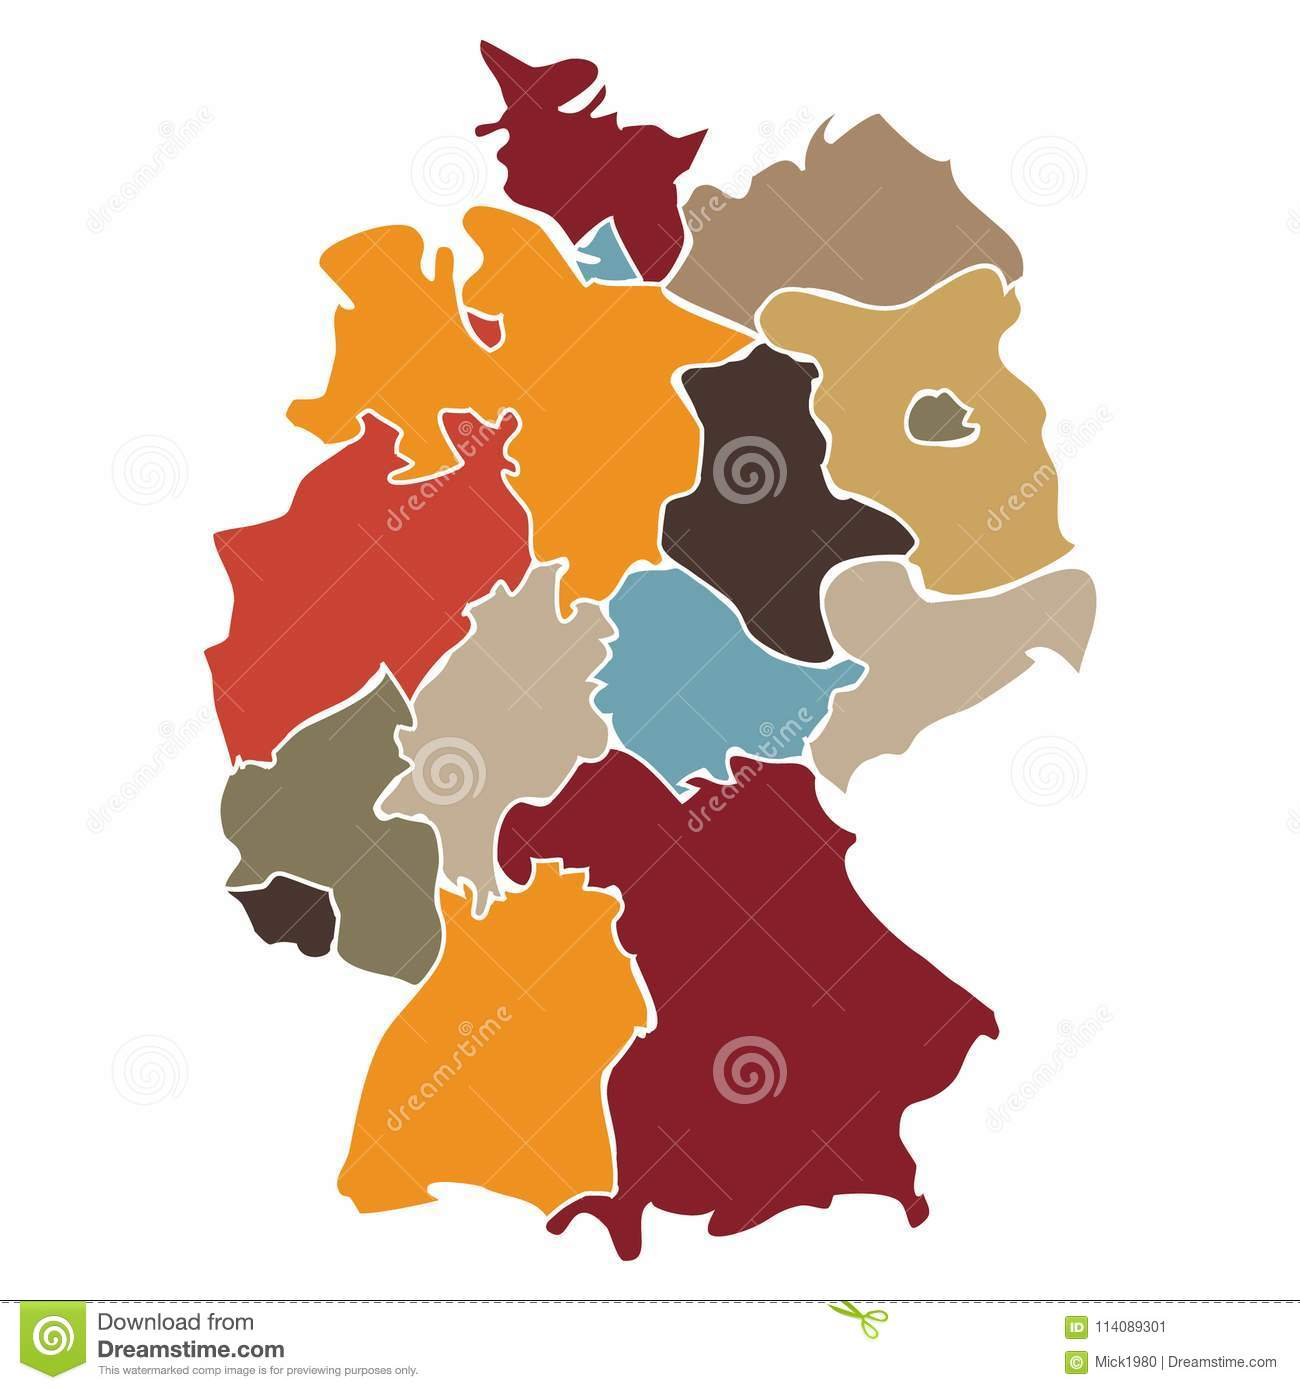 Map Of States Of Germany.Map Of States Of Germany Stock Vector Illustration Of Color 114089301